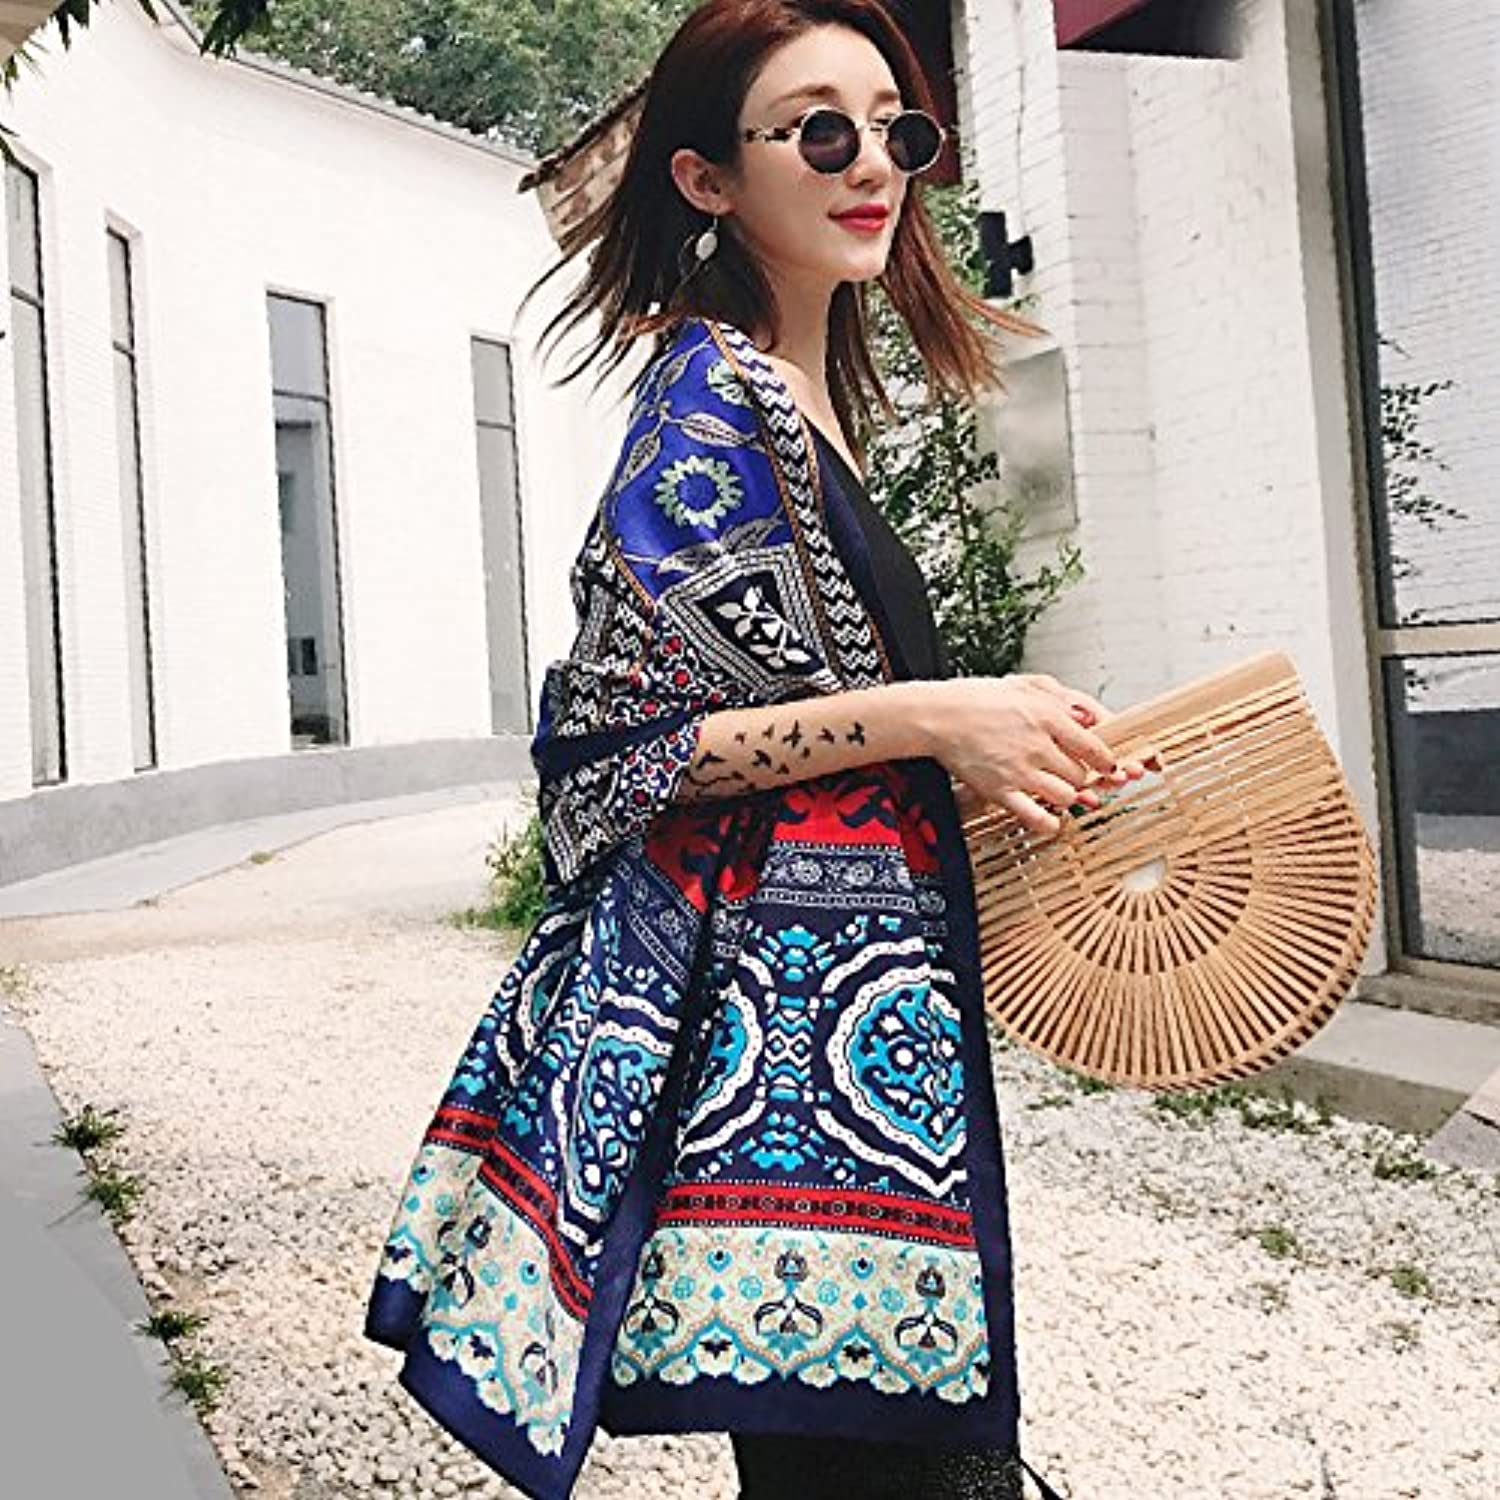 Women's Boho Bohemian Beach Bikini Cover Up Printed Scarf Shawl Wrap